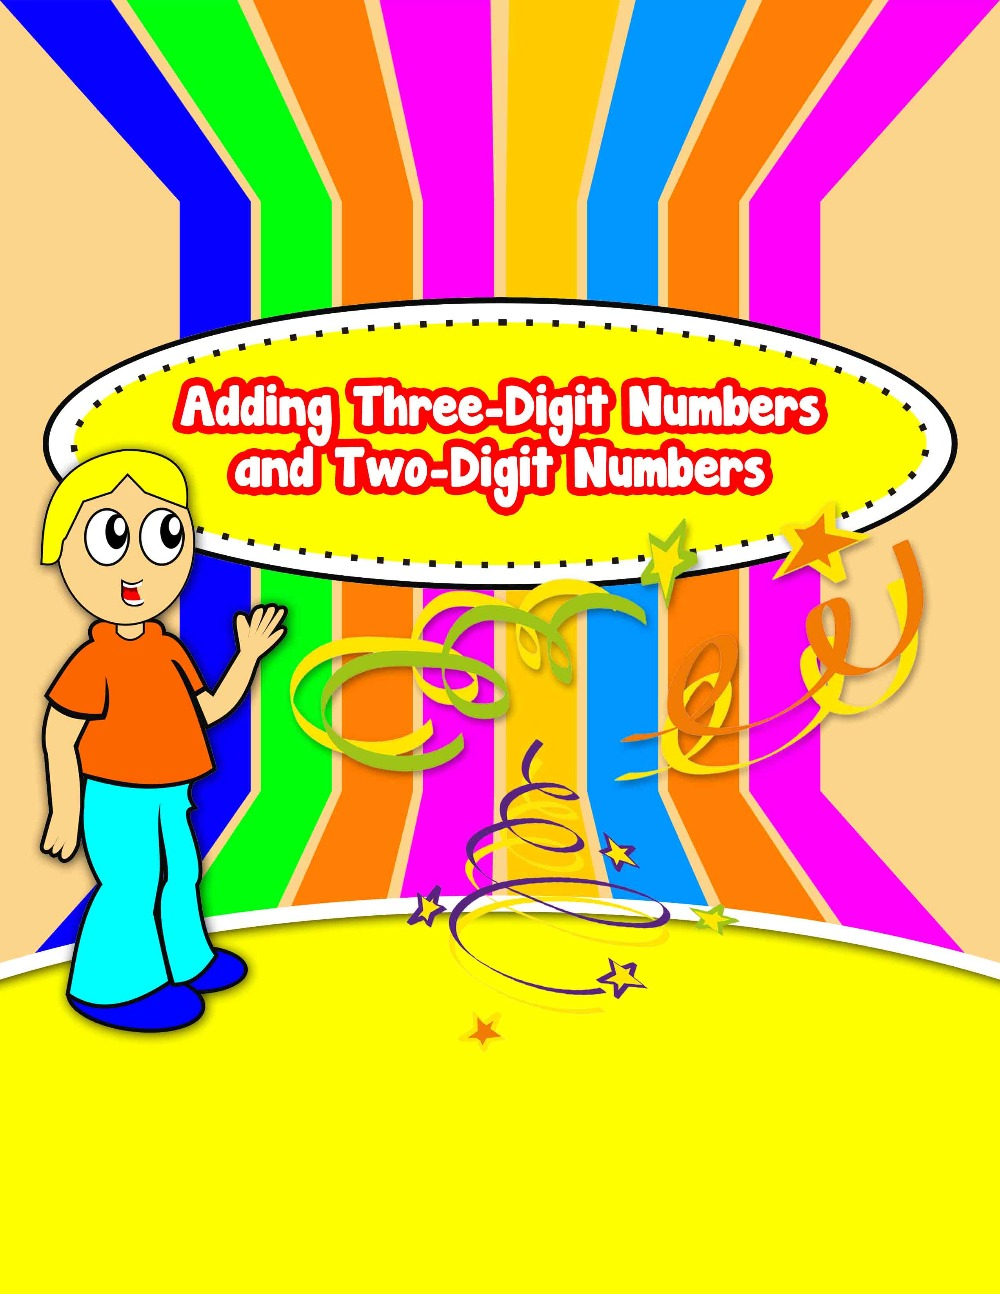 Adding Three-Digit Numbers and Two-Digit Numbers